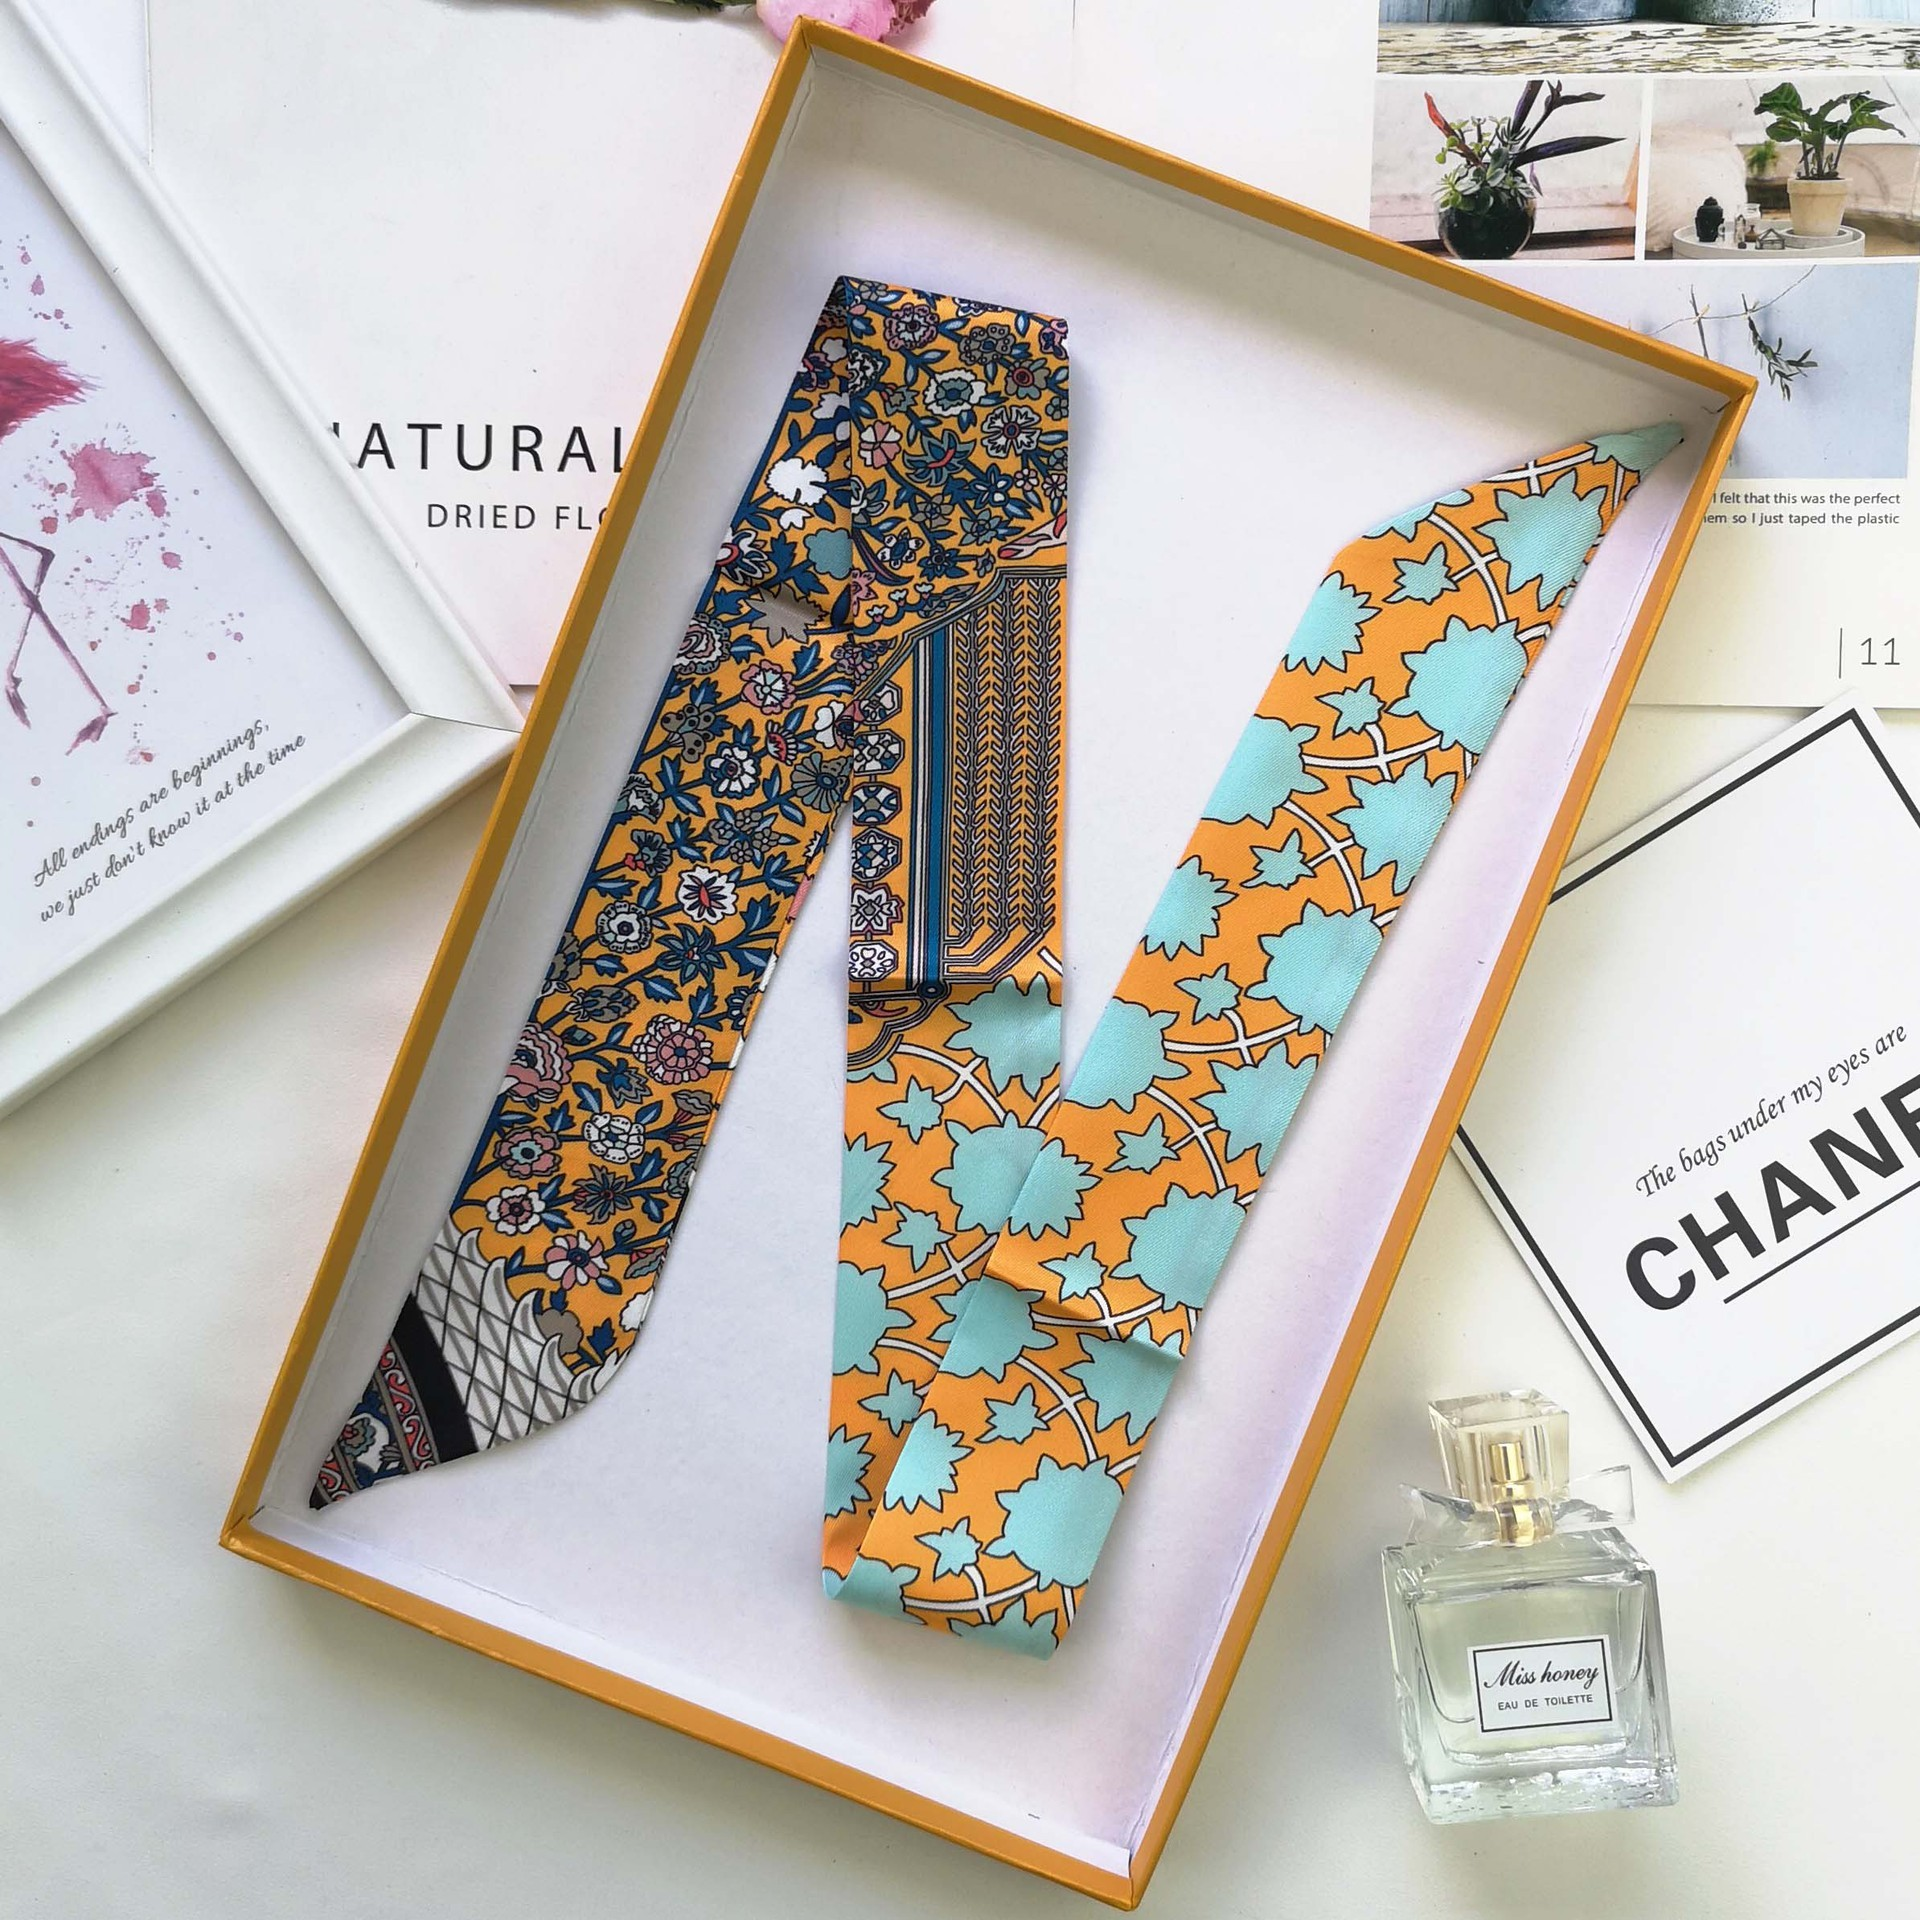 Brand Luxury 6colors Women Sharp-angled Scarf Water Glass Cup Prints Long Wraps Scarves Shawl Handkerchief Bag Decor